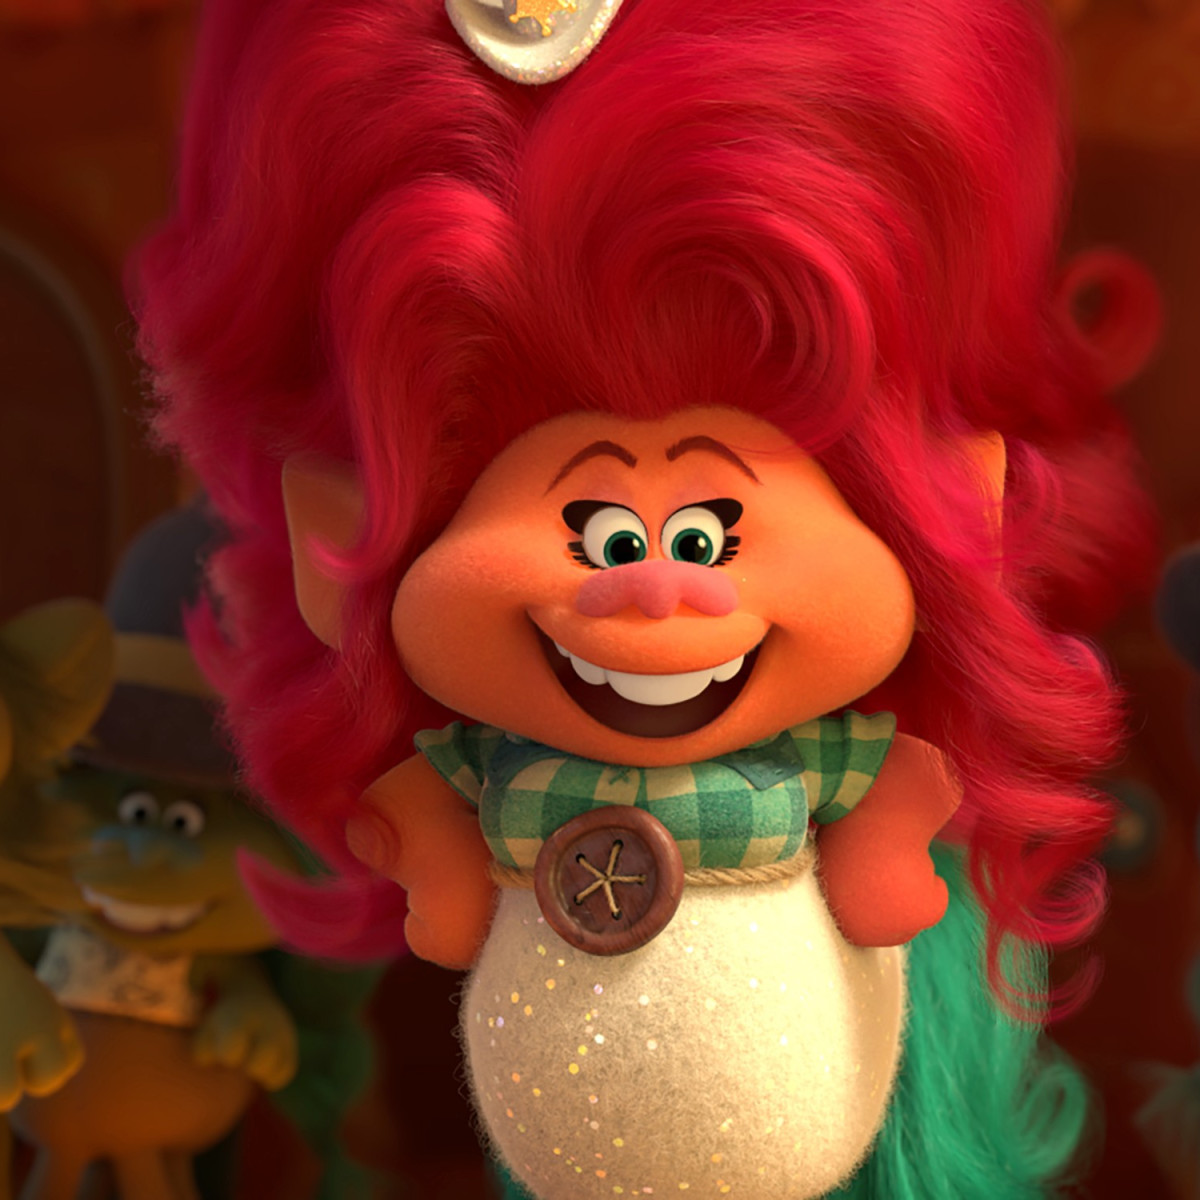 Delta Dawn (Kelly Clarkson) in Trolls World Tour